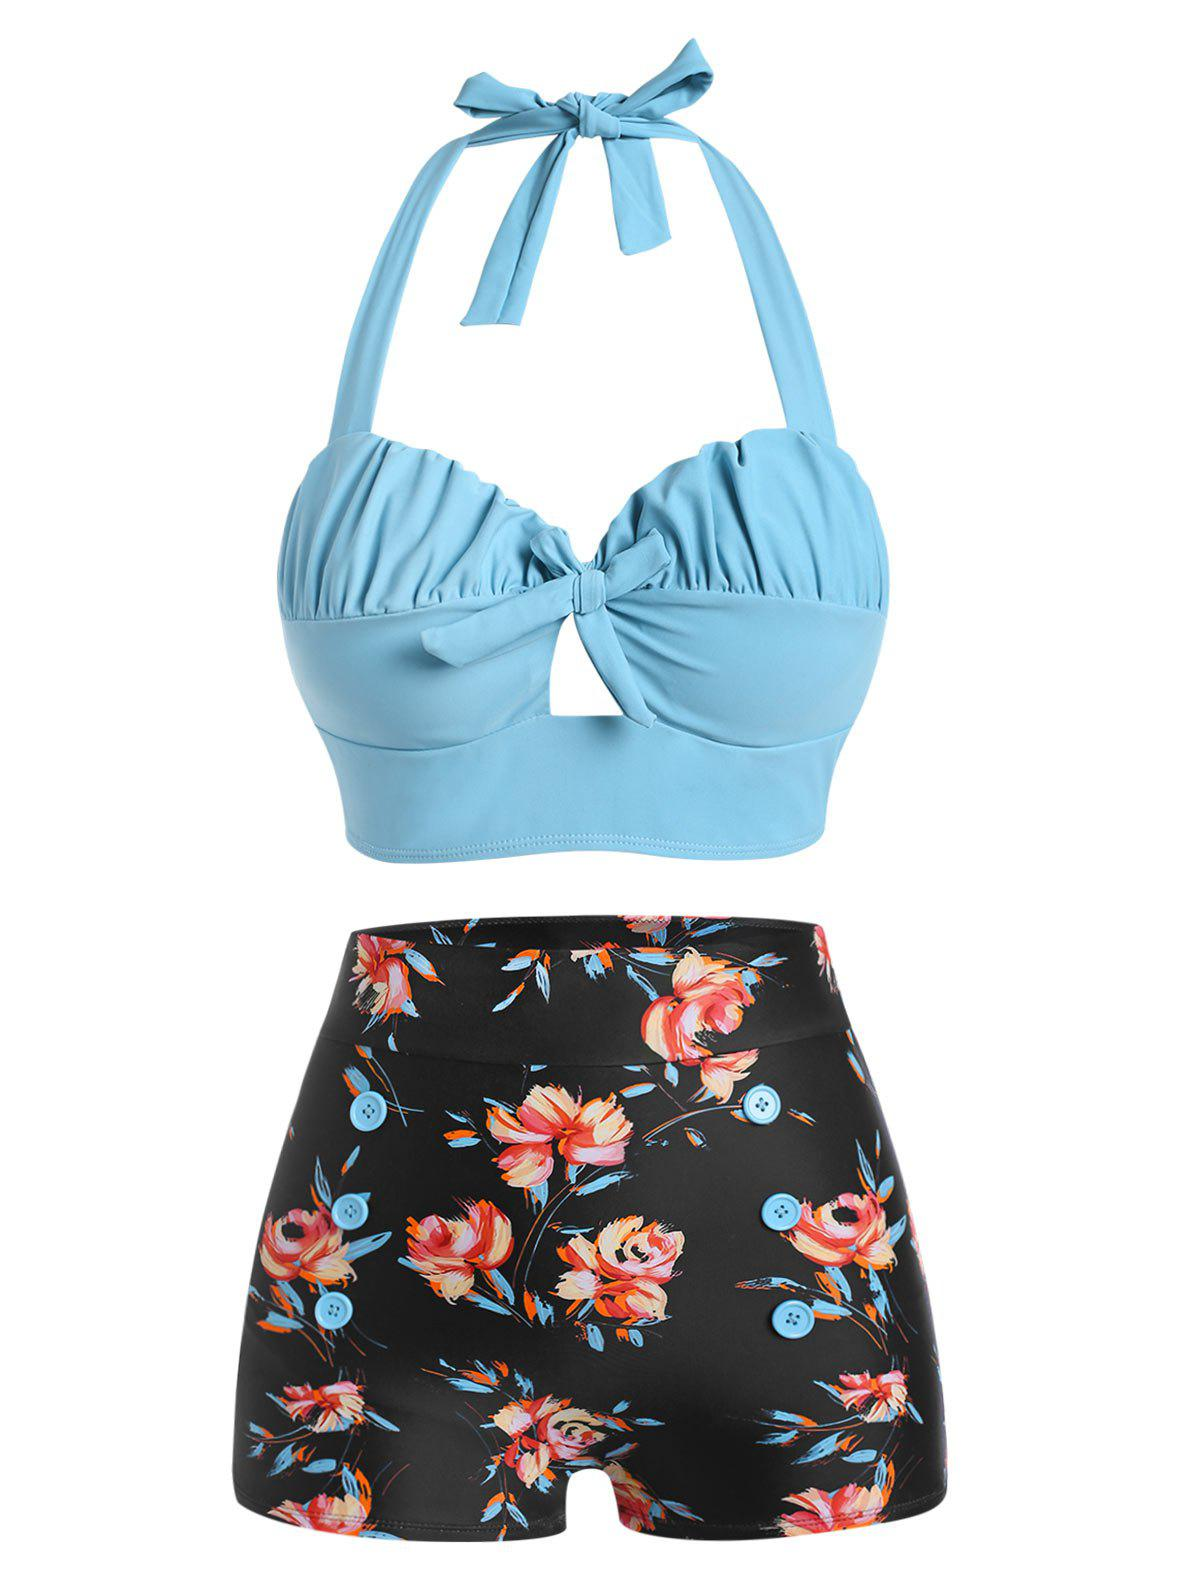 Halter Floral Ruched Boyshorts Bikini Swimwear - LIGHT SKY BLUE XL